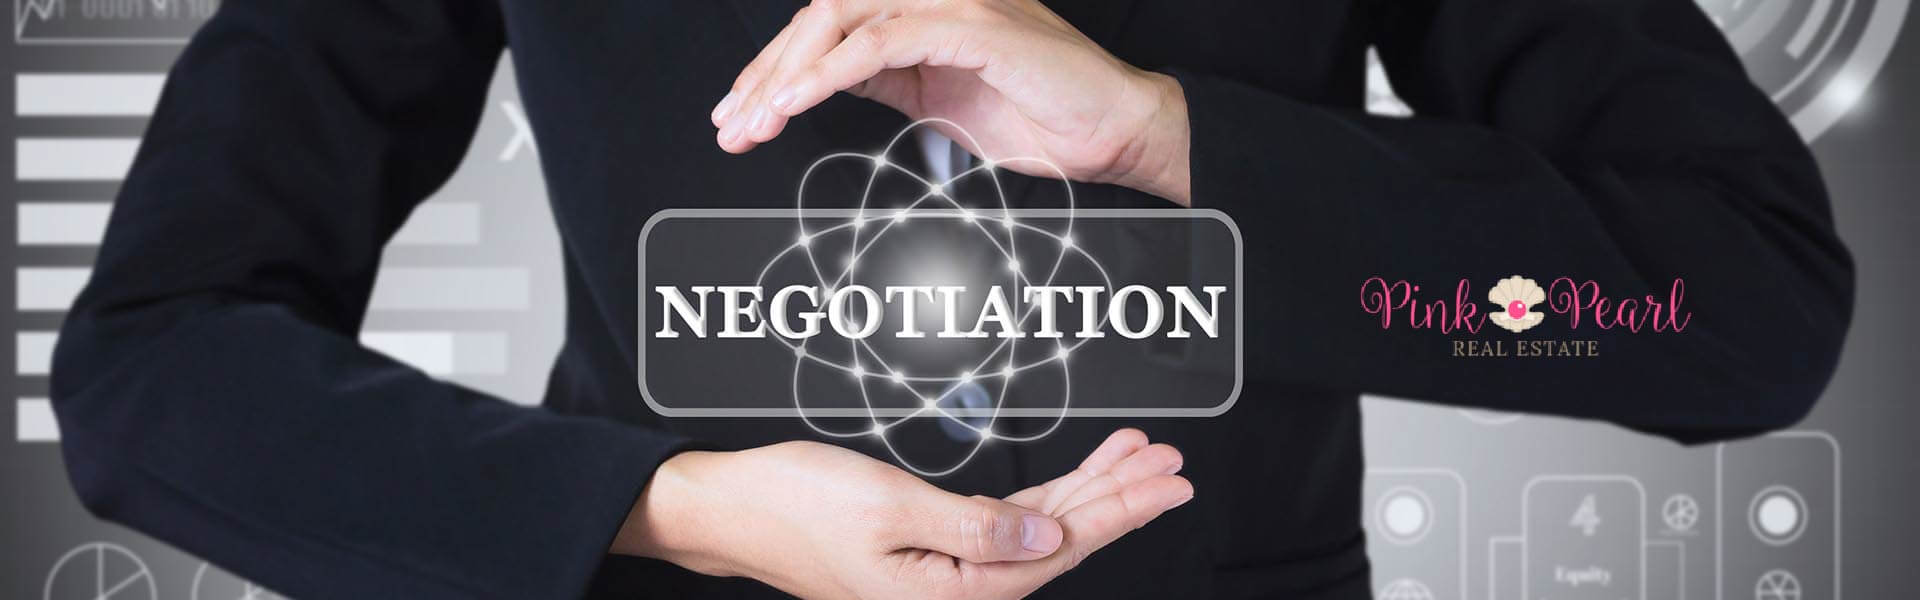 Negotiation Tips by Pink Pearl Real Estate